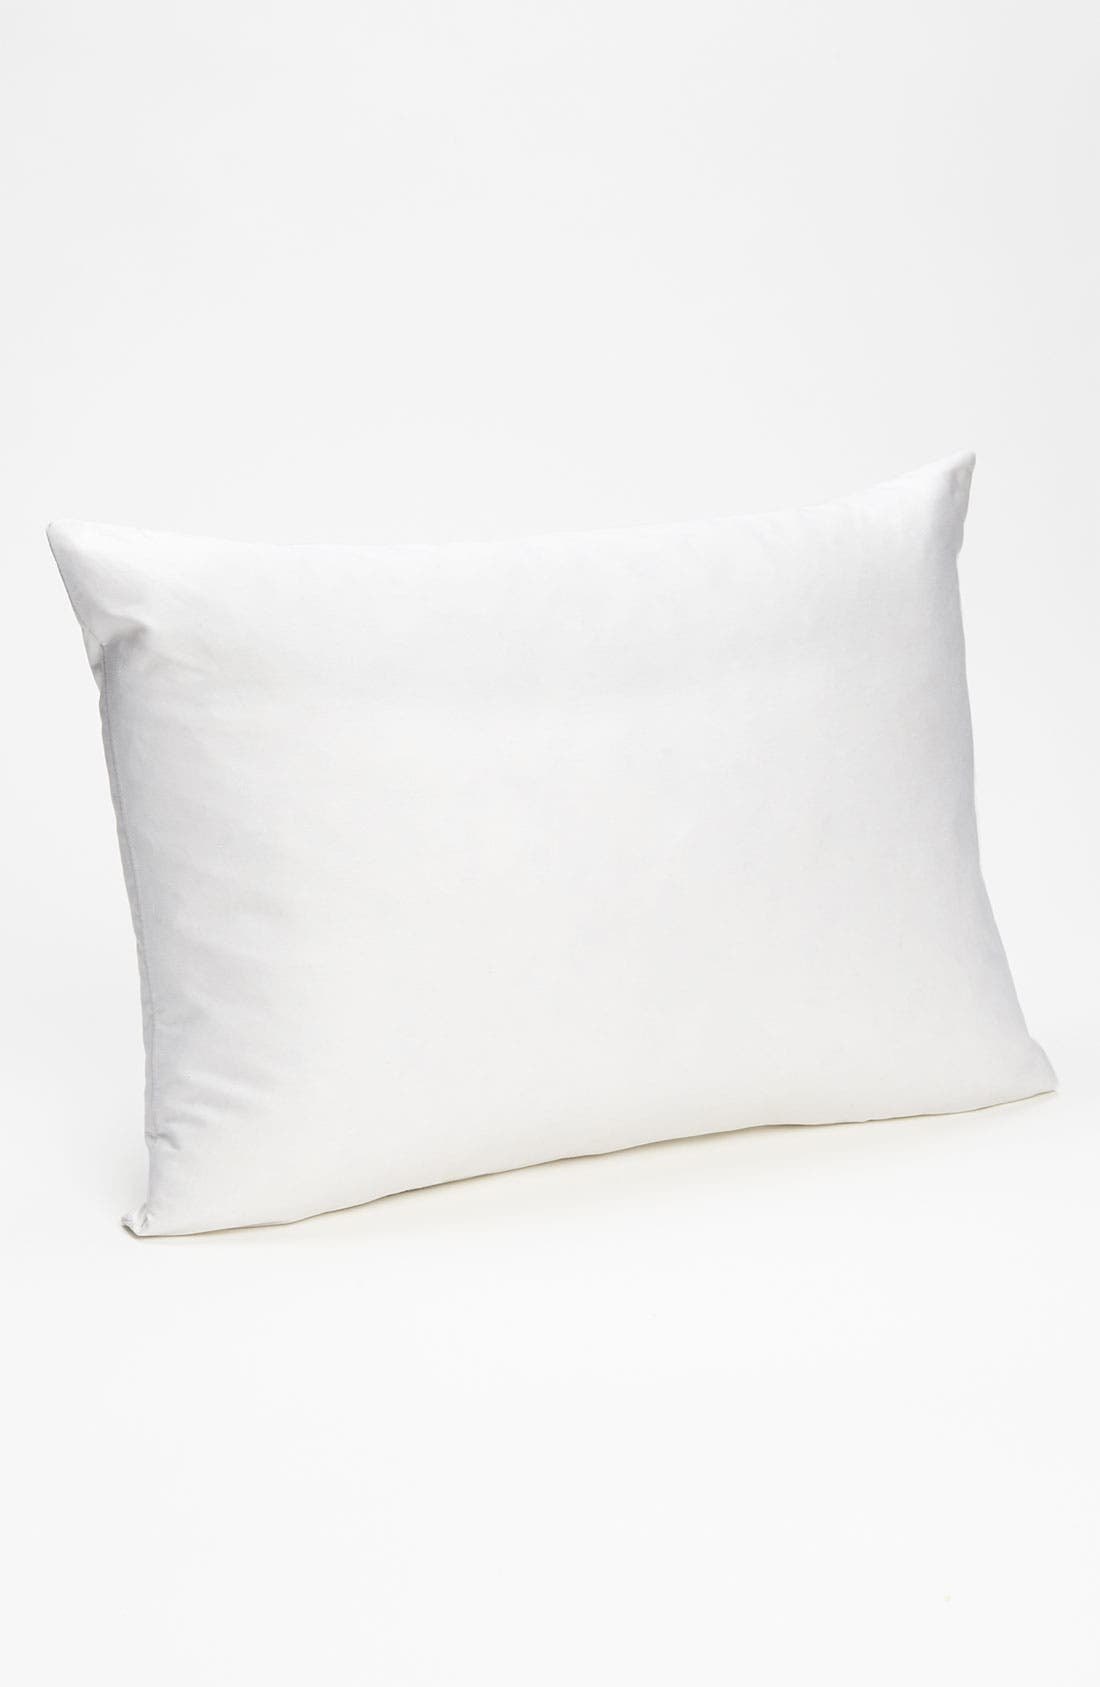 Alternate Image 1 Selected - Nordstrom at Home 14x20 Feather & Down Pillow Insert (2 for $24)